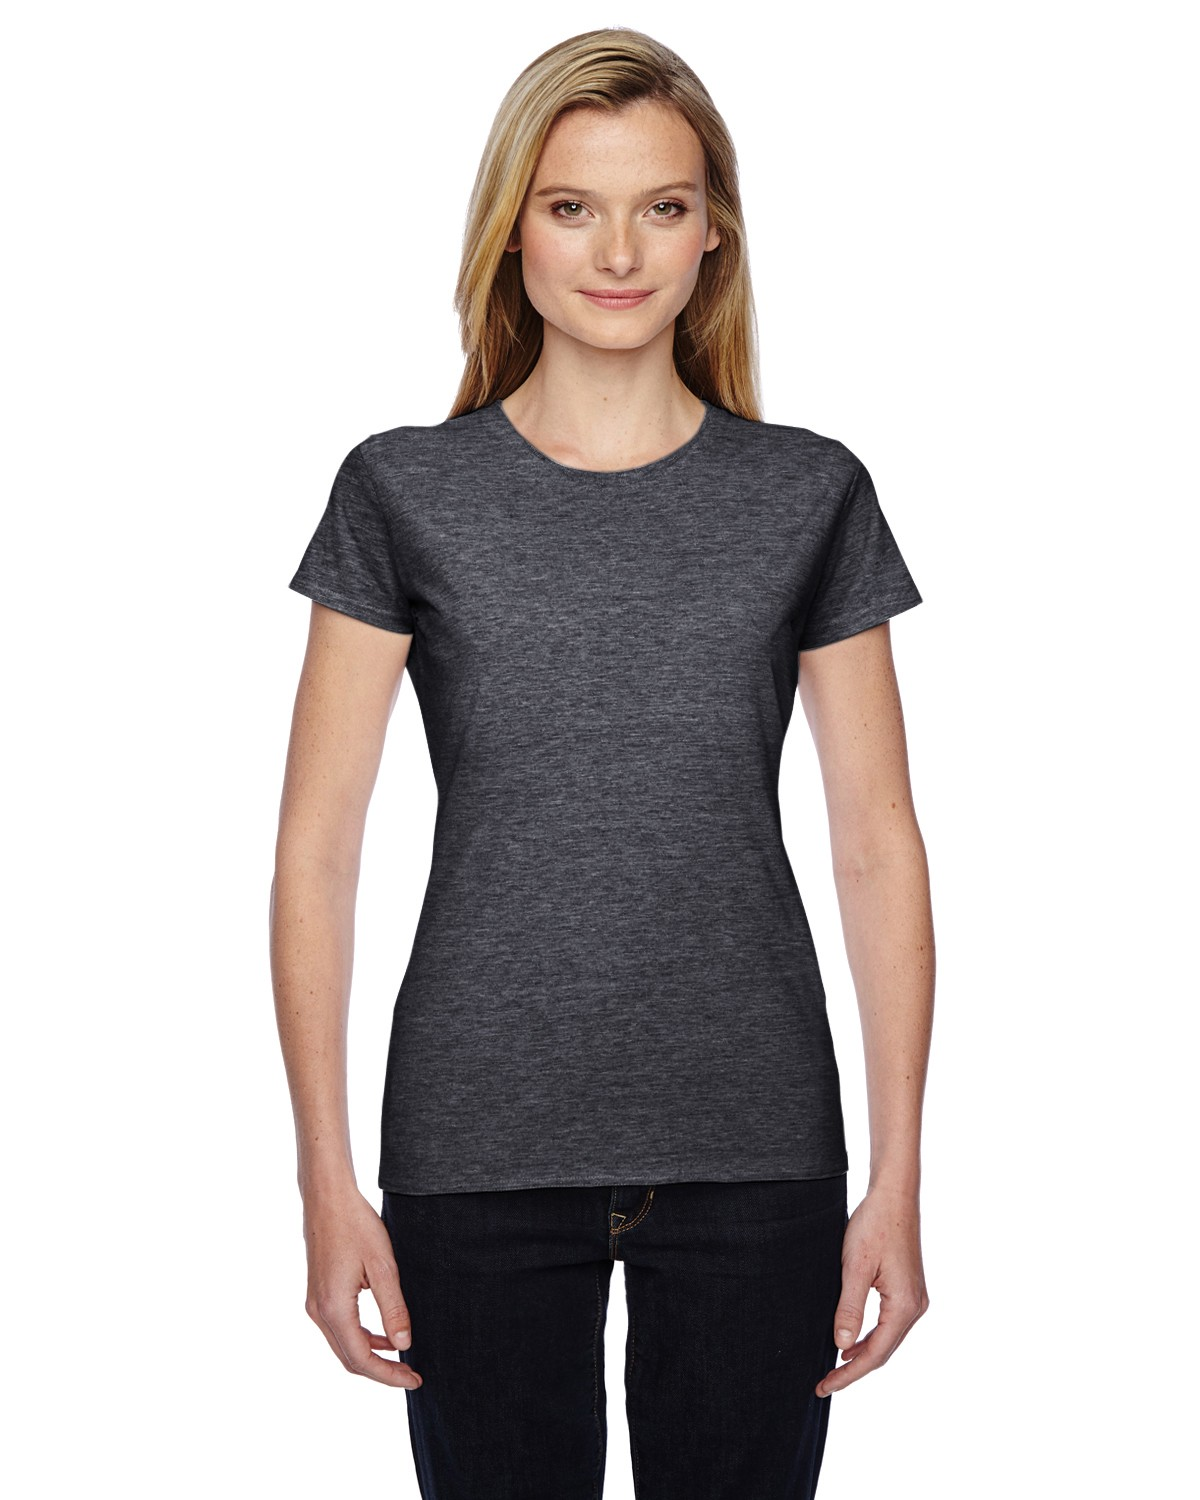 SSFJR Fruit of the Loom CHARCOAL HEATHER